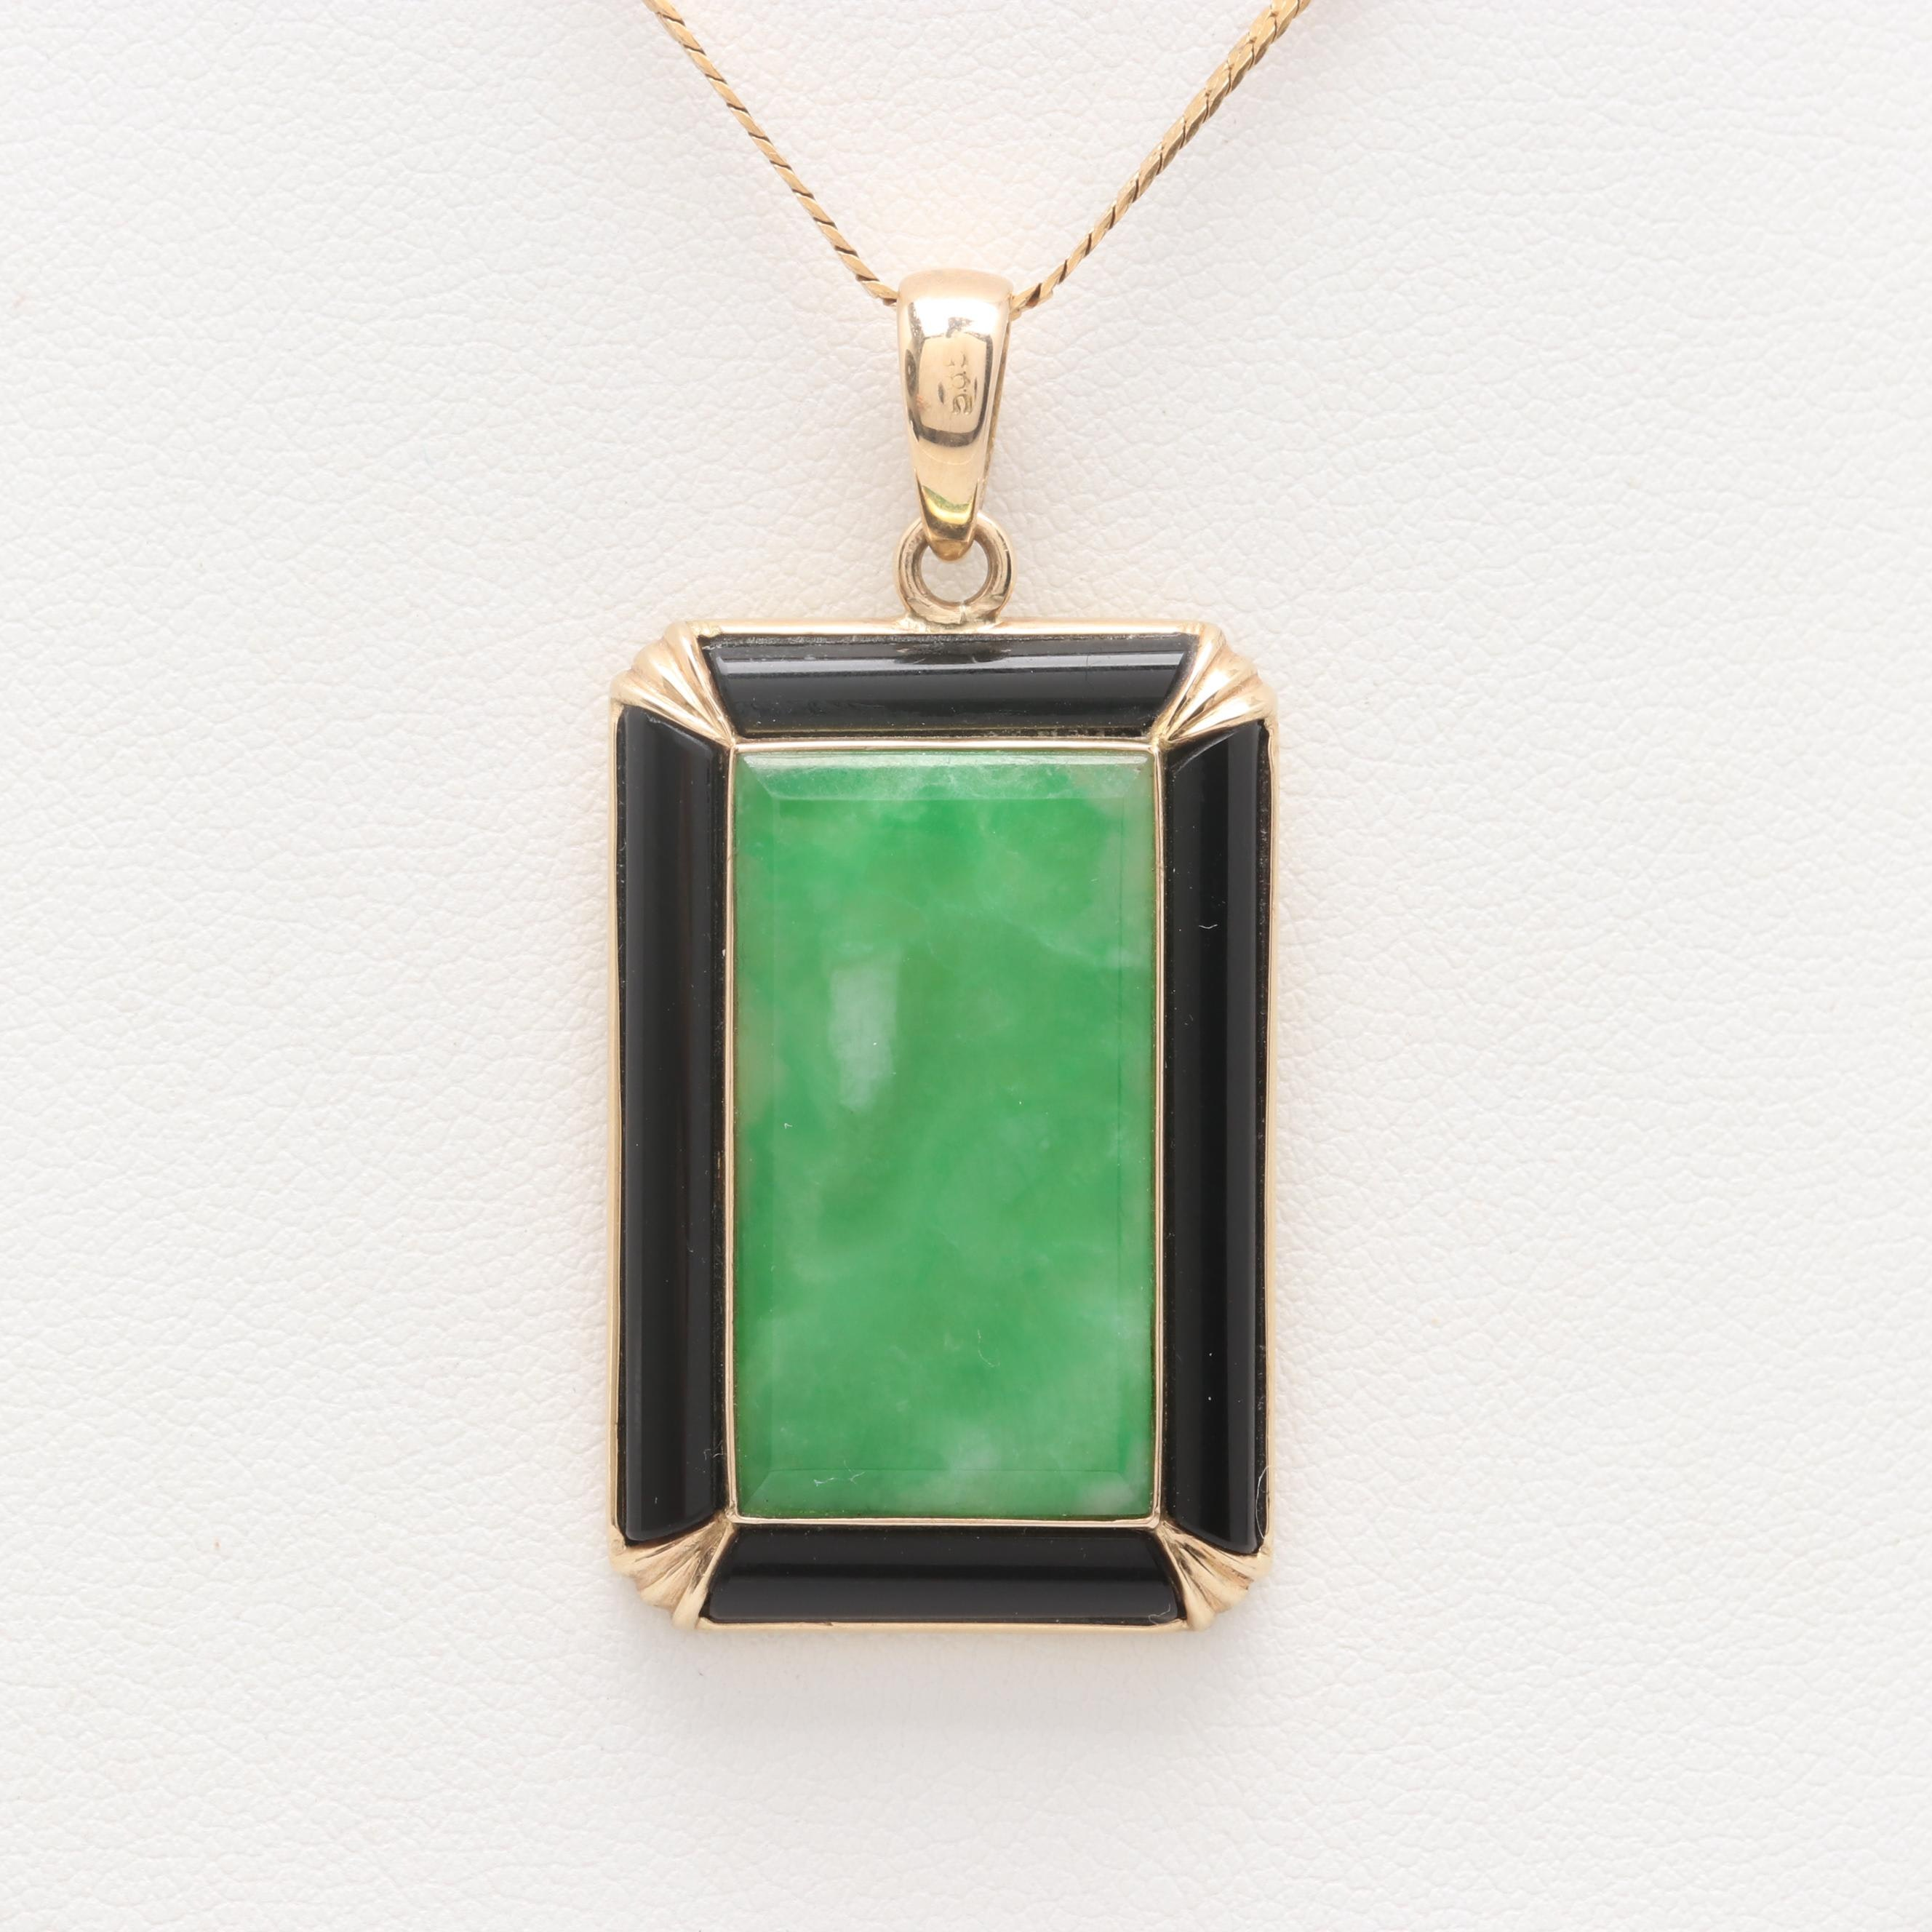 14K and 18K Yellow Gold Jadeite and Black Onyx Pendant Necklace